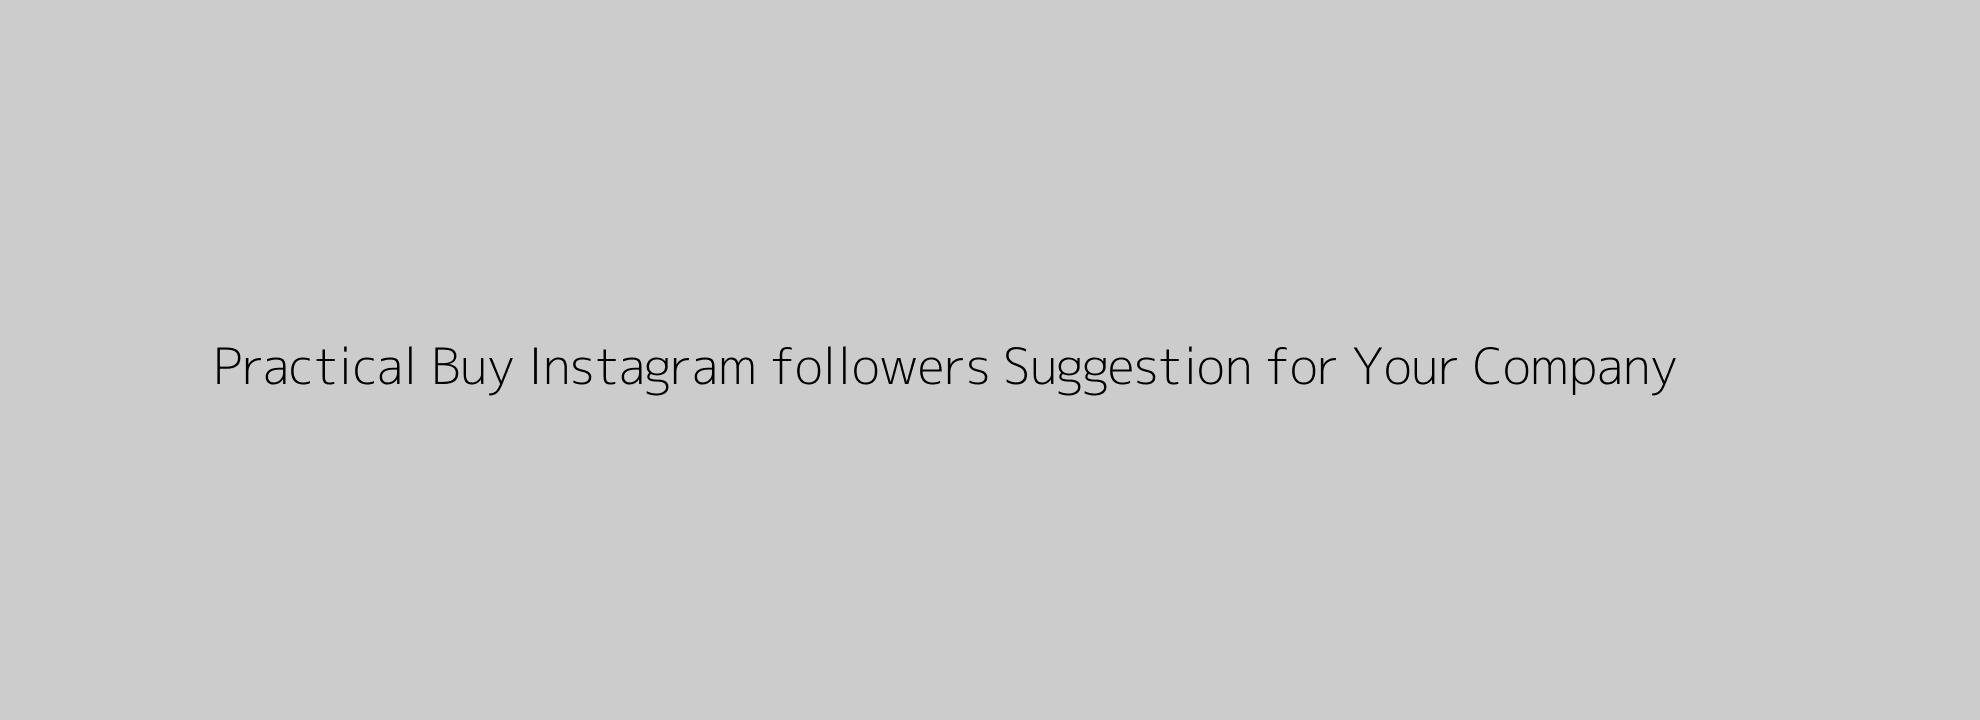 Practical Buy Instagram followers Suggestion for Your Company